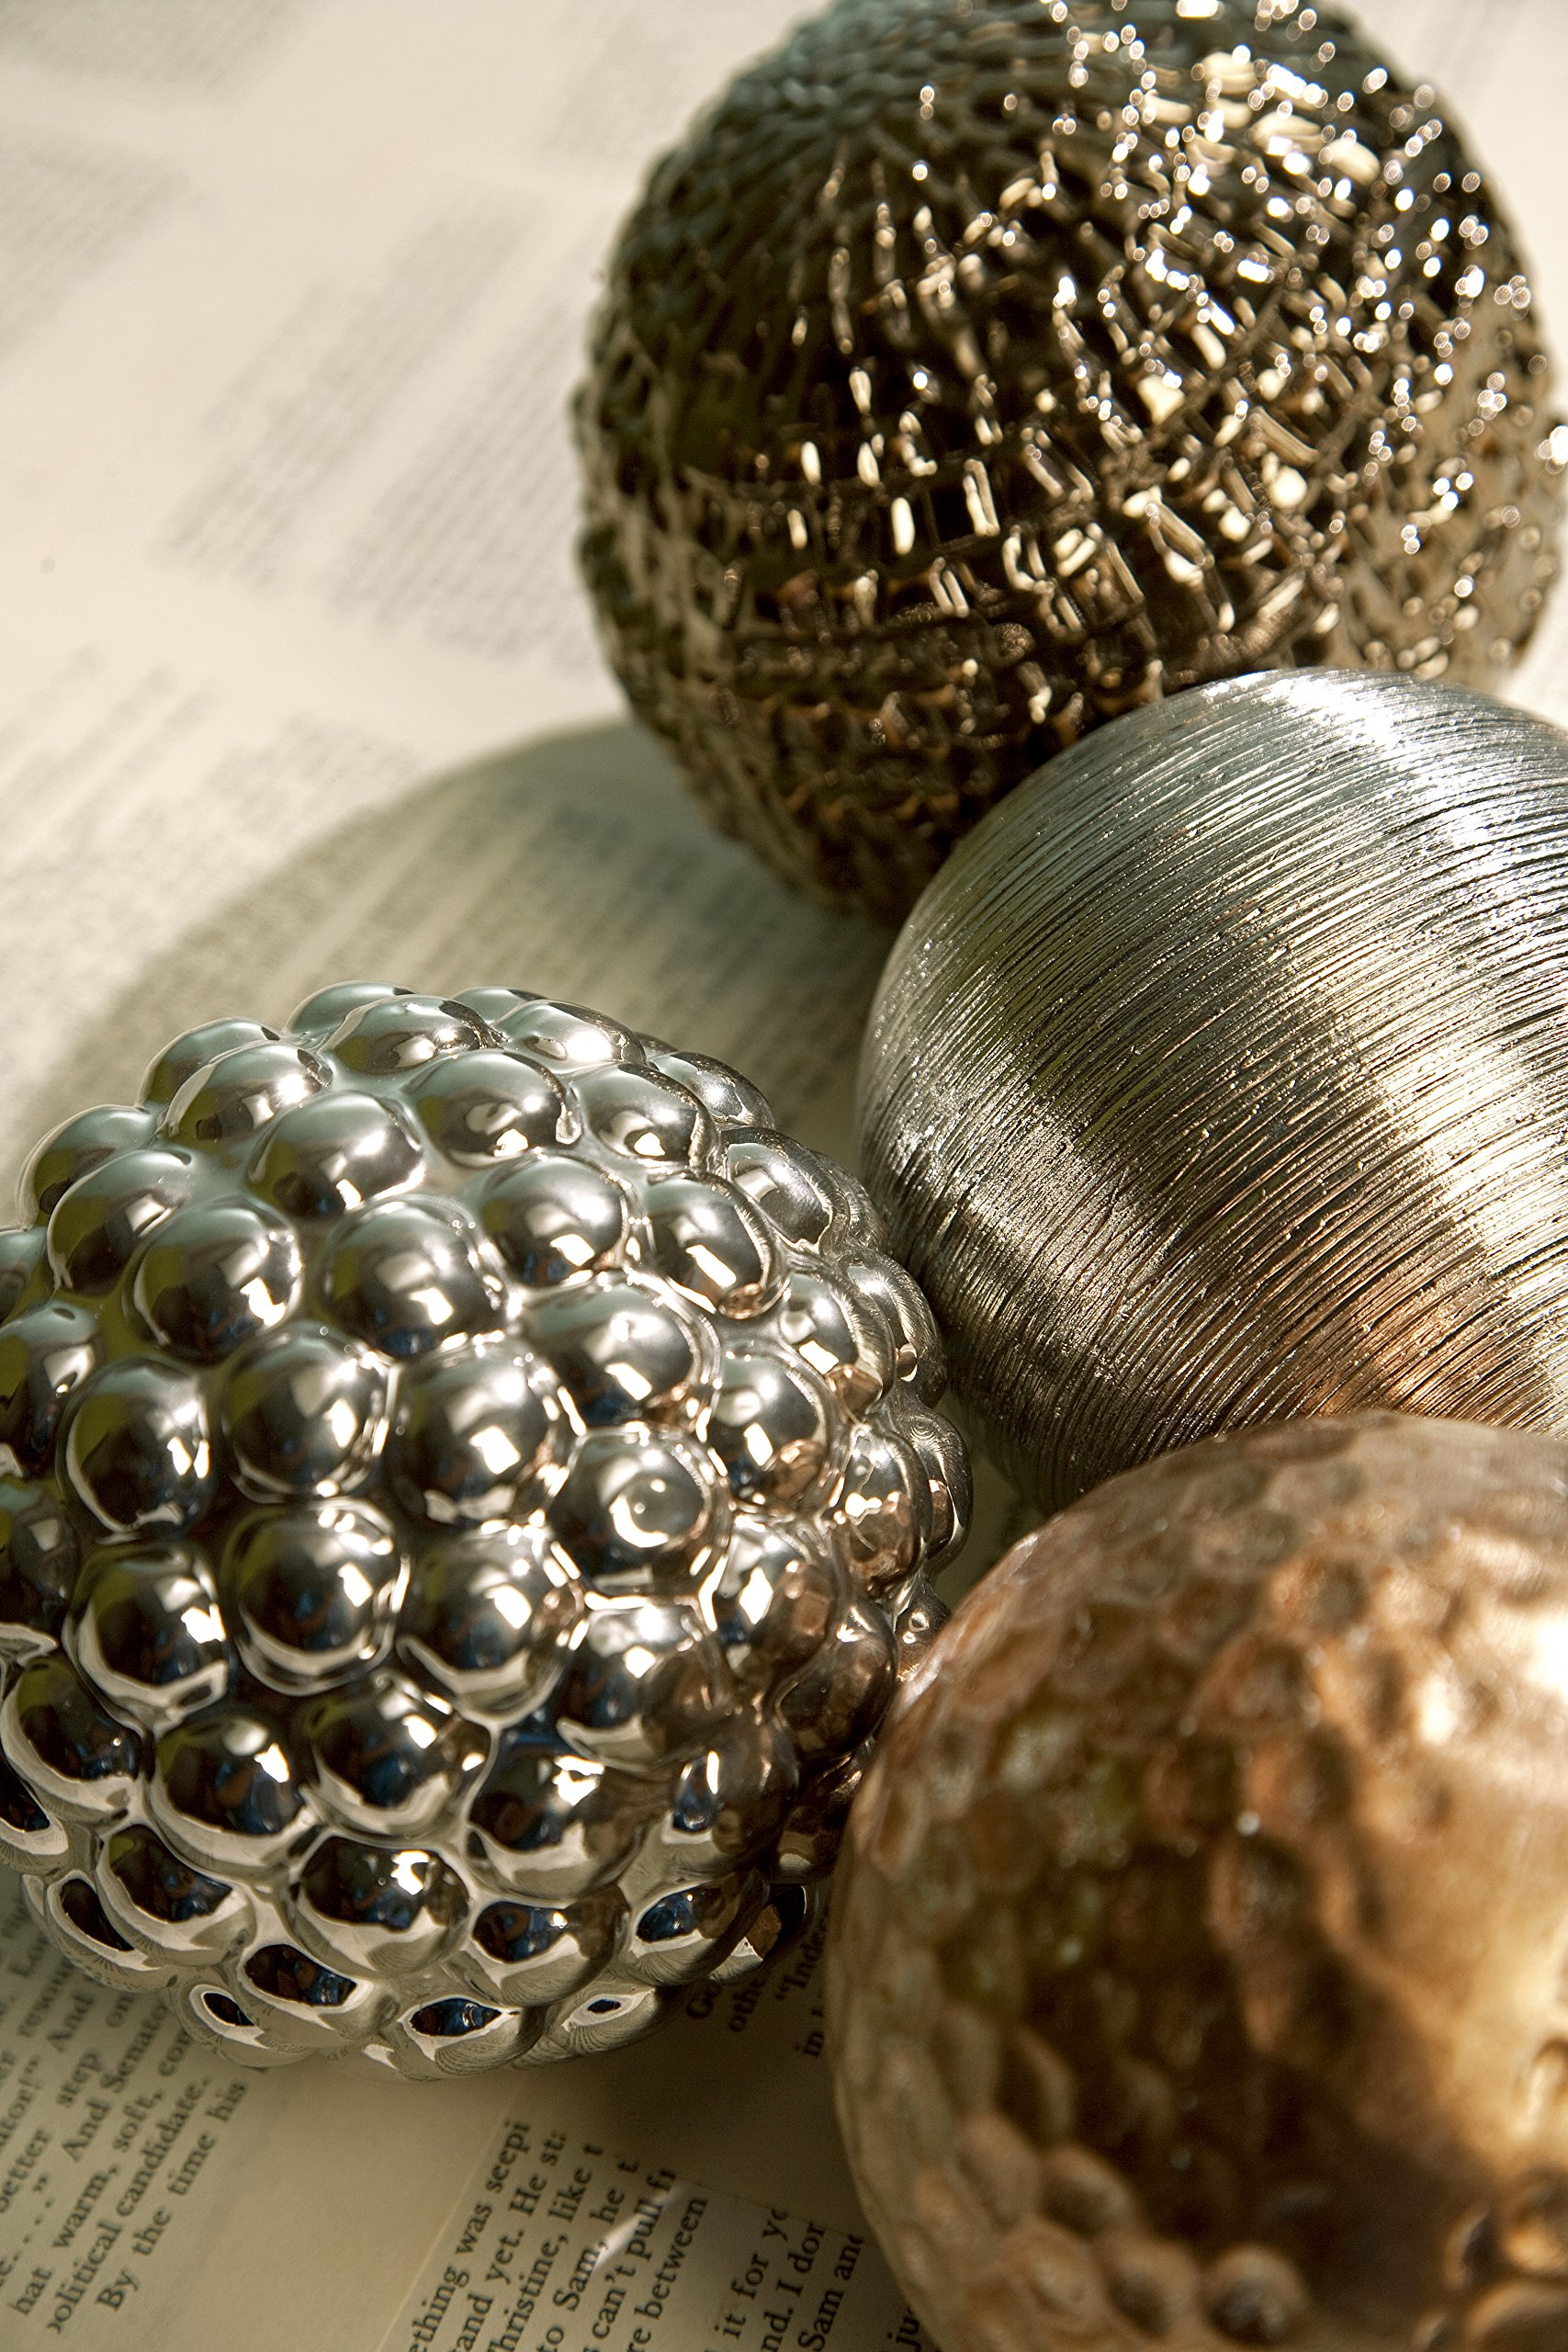 Imax 1589-4 Metallic Finished Orb Set – Handcrafted Spherical Balls, Ceramic Orbs for Decorative Purposes. Home Decor Accents